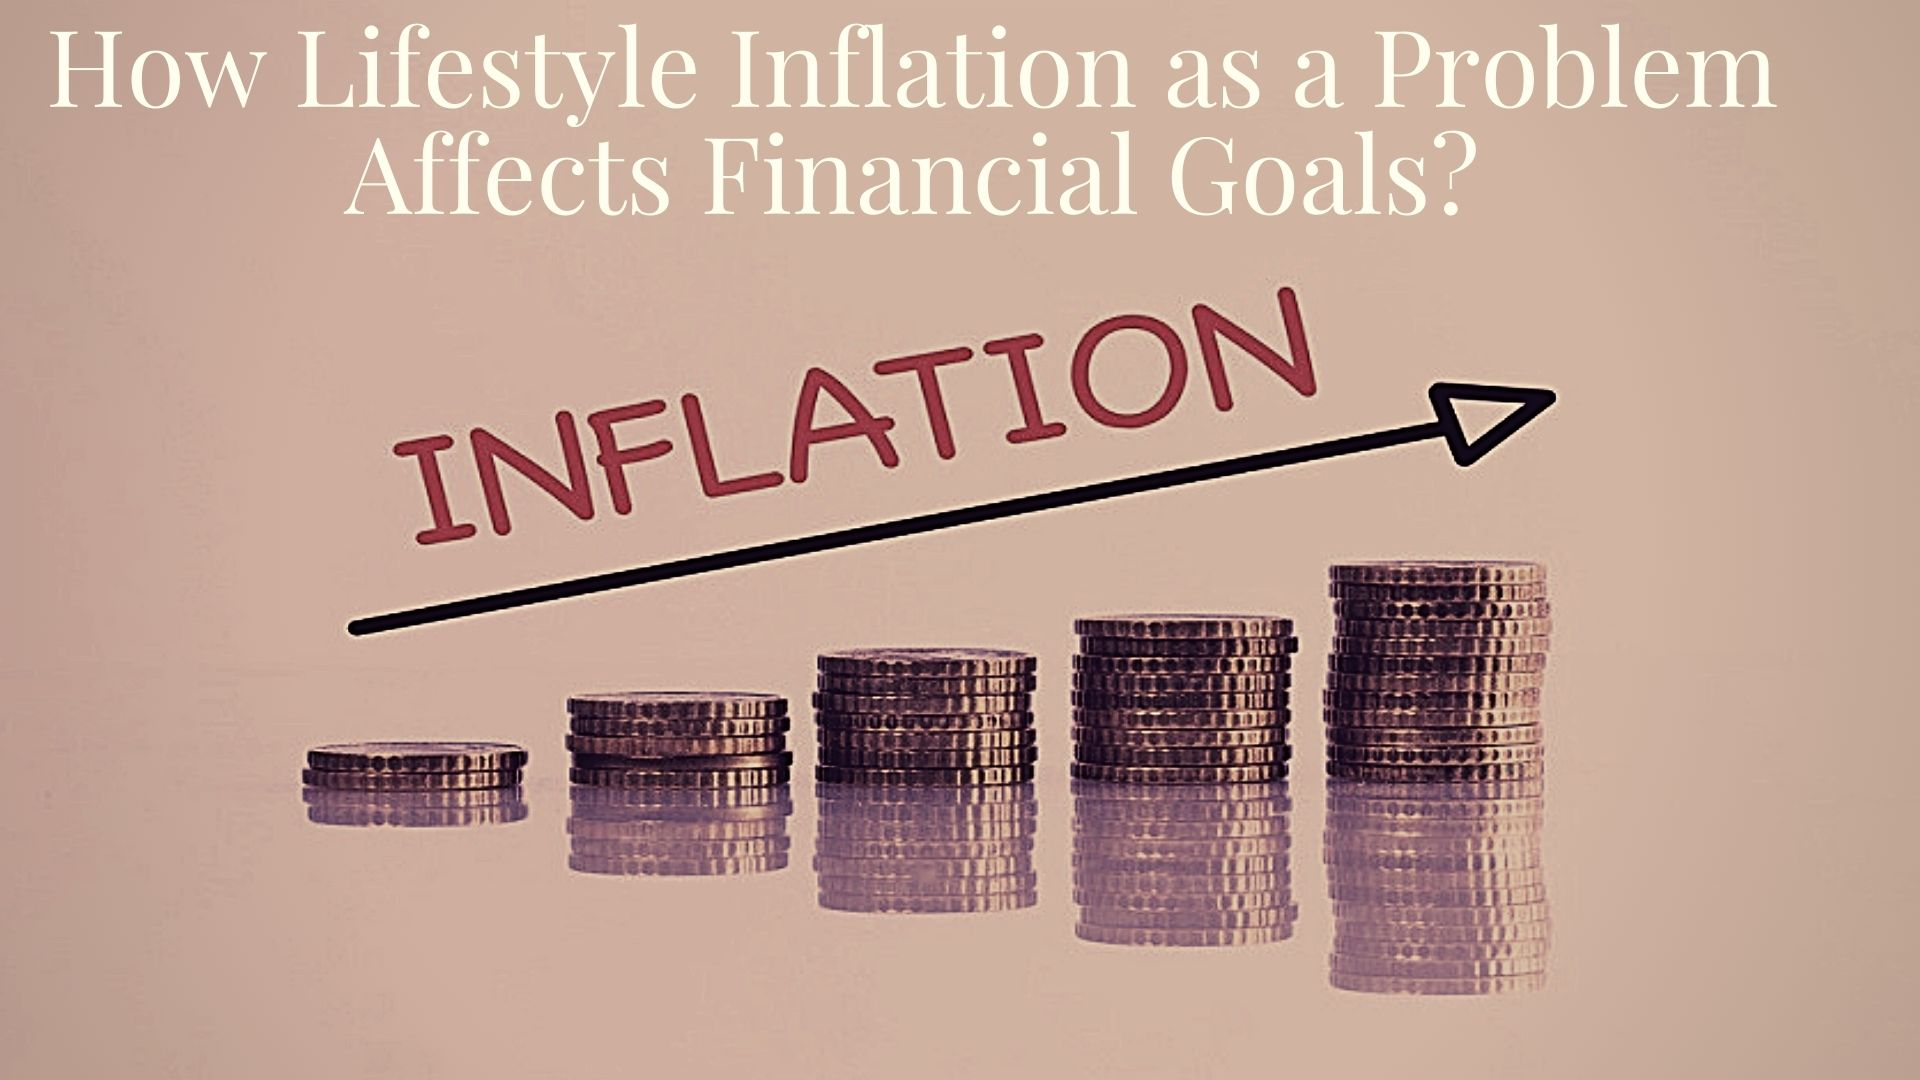 LIFESTYLE INFLATION 2